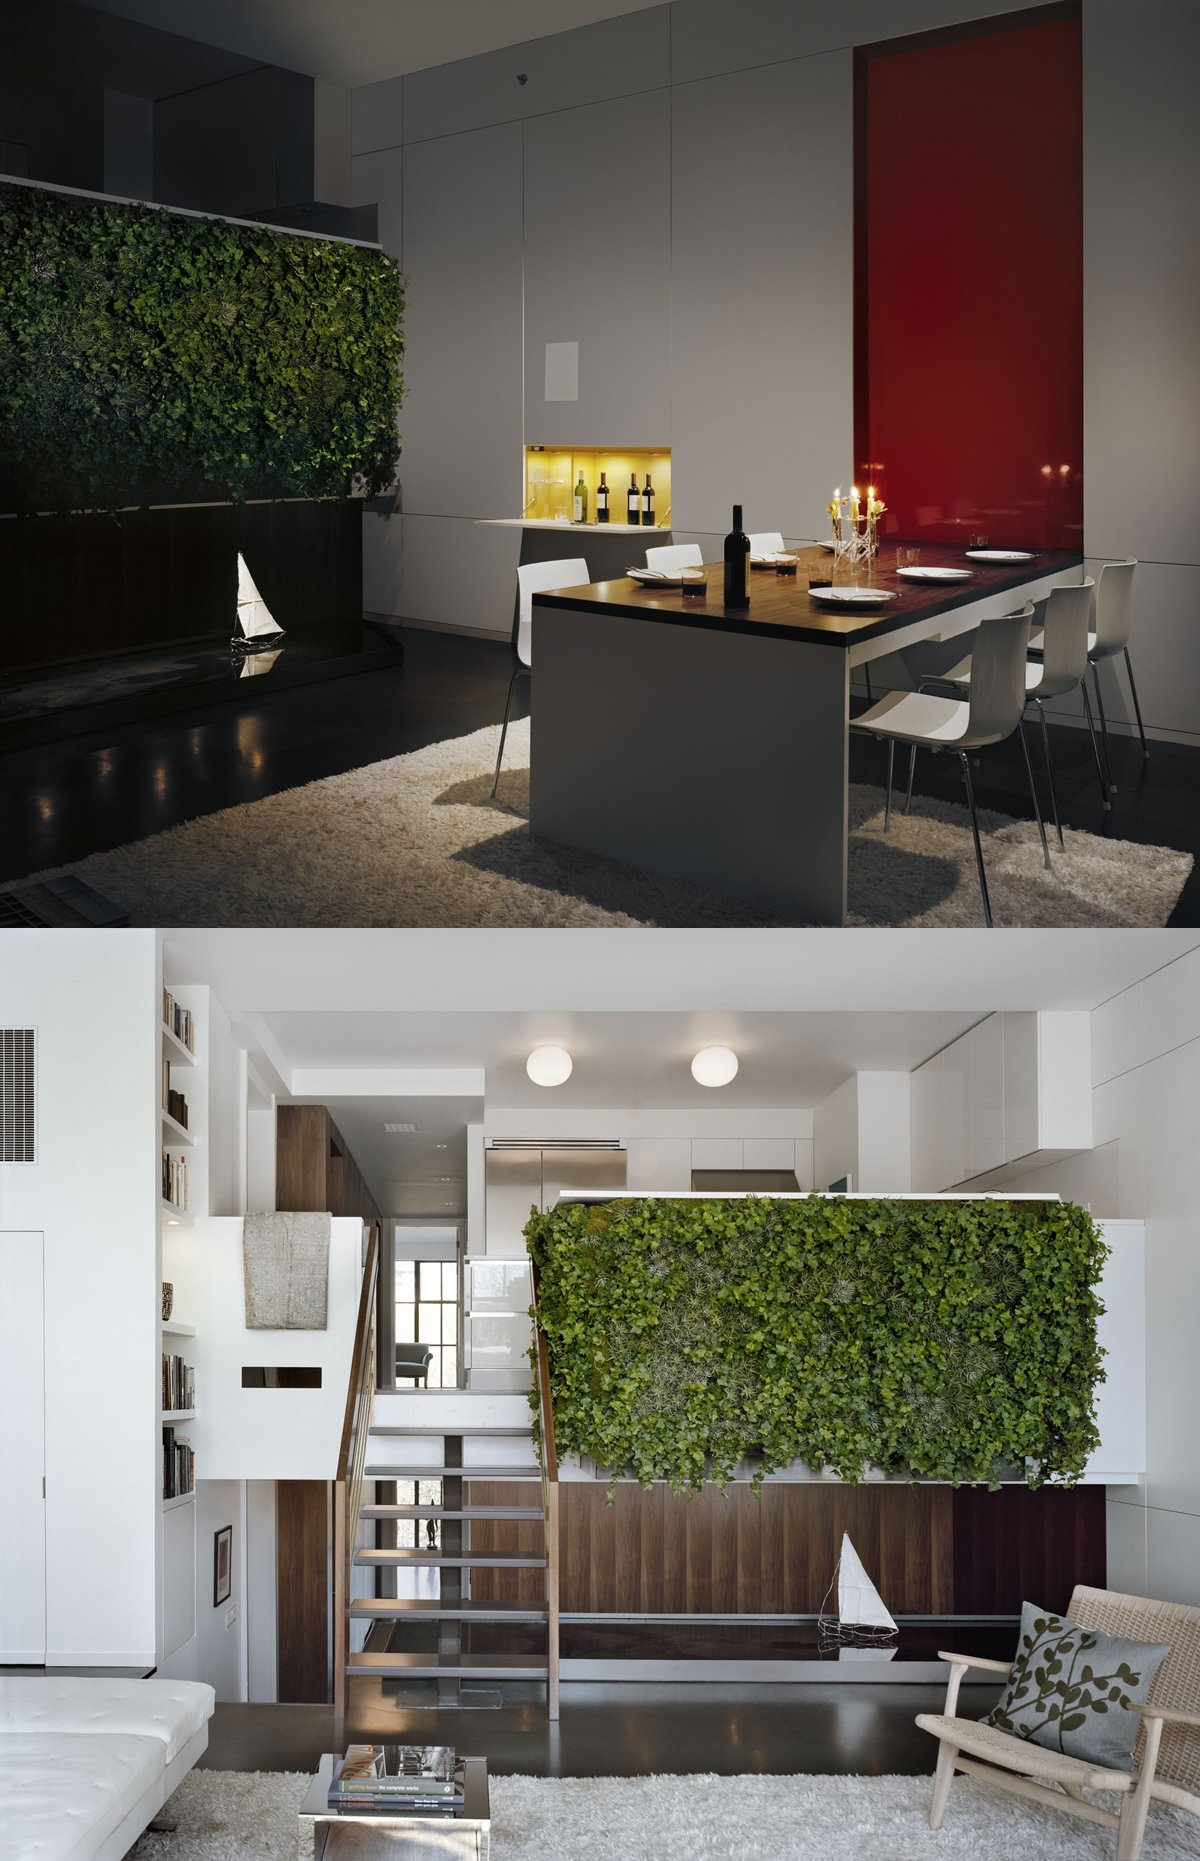 Pulltab Design living green wall with water feature